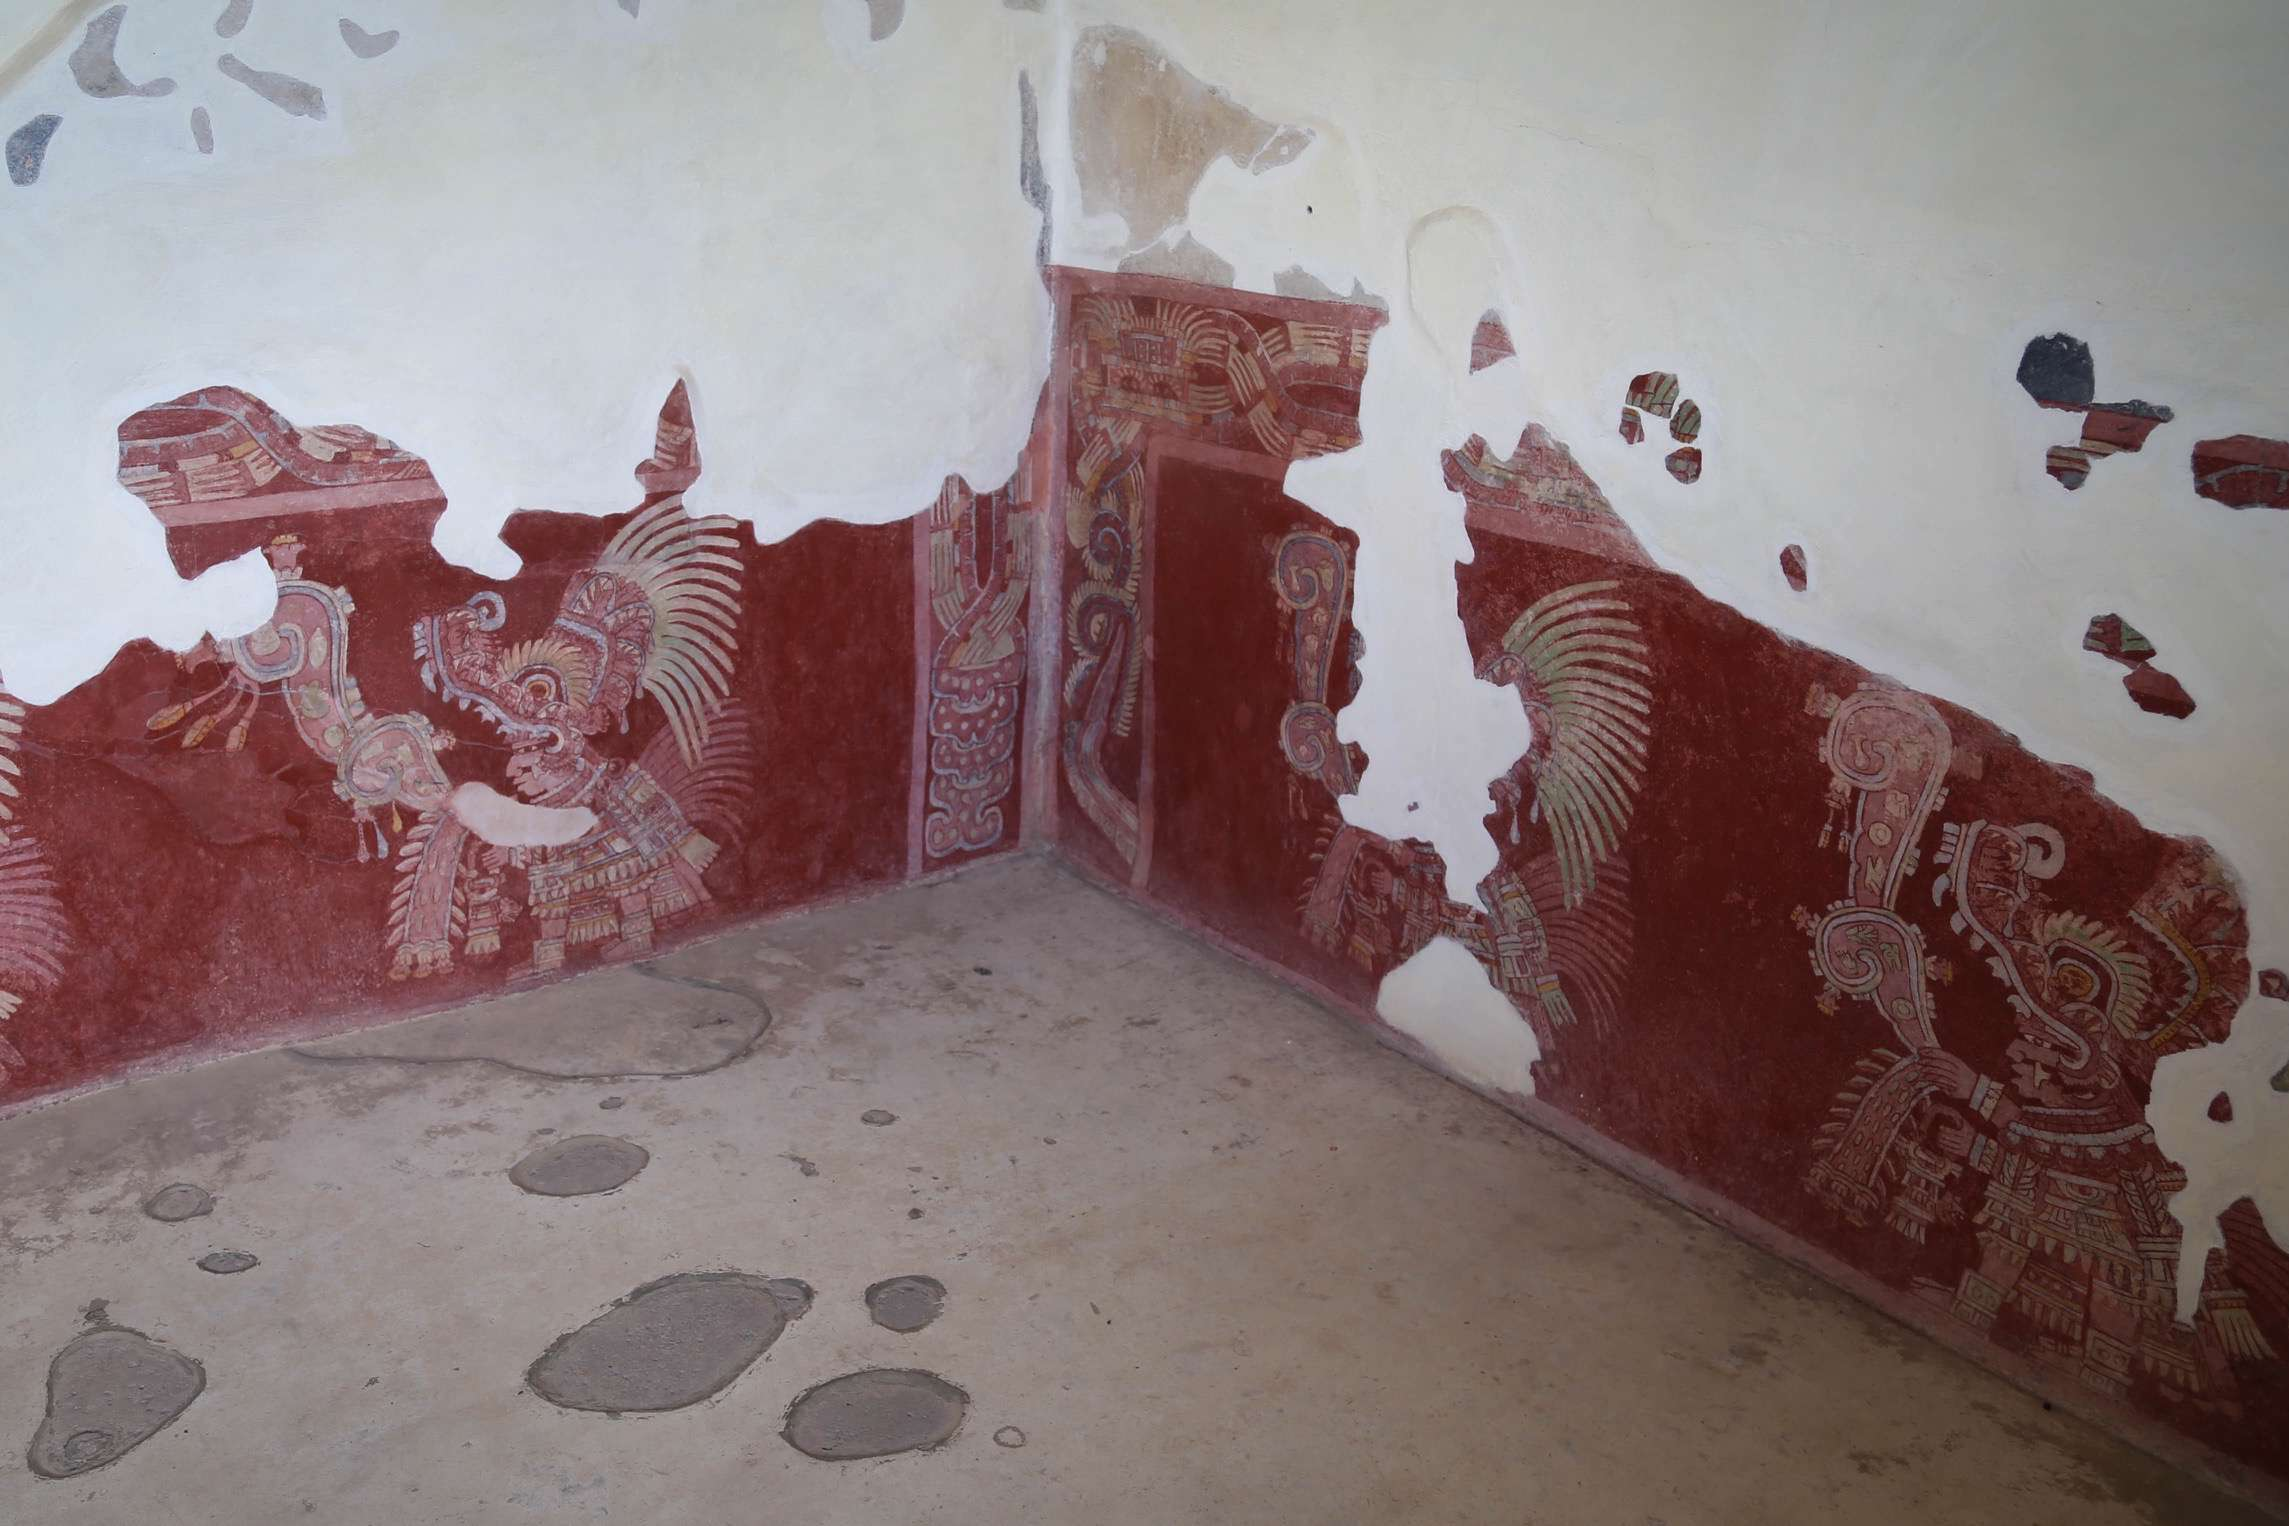 Scientists believe the walls in this home were covered with this pictographic art that told stories of the people who lived and worked at Teotihuacan.